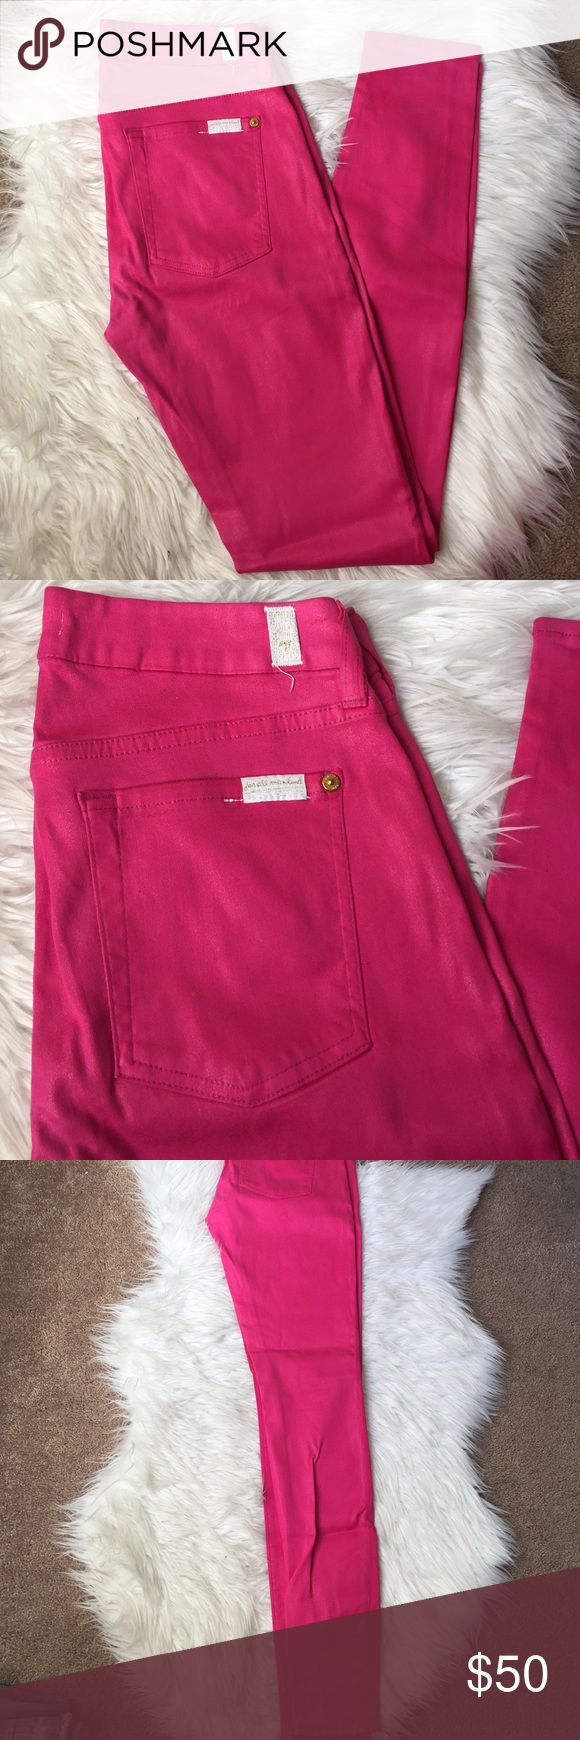 7 For All Mankind Wax Coated Skinny Jeans Pink skinny jean with a wax coating for a leather looking effect. Worn once! Great for spring! 7 For All Mankind Jeans Skinny